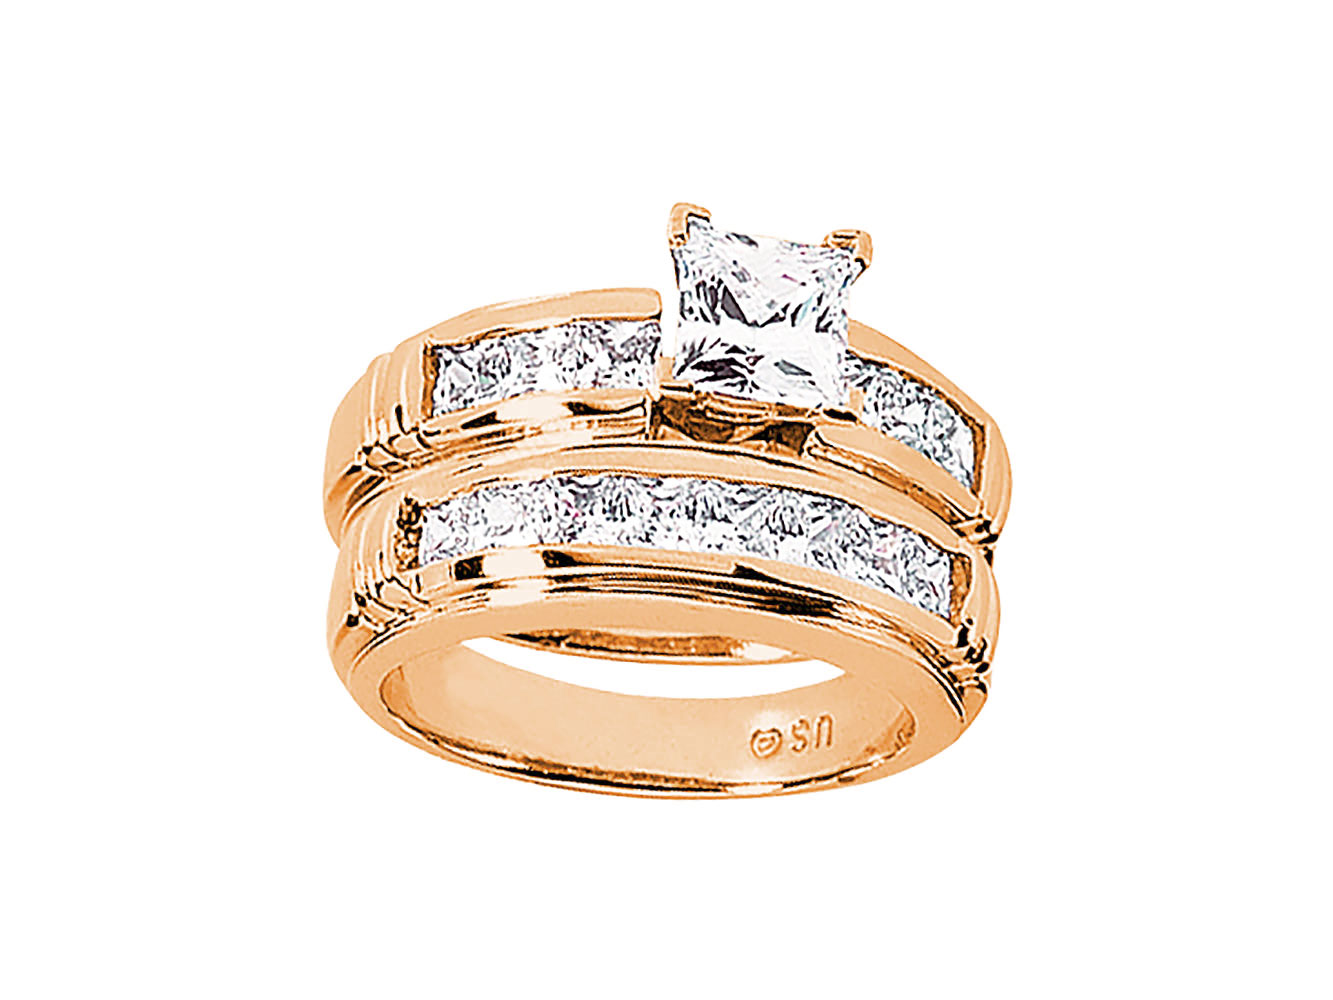 10k gold wedding ring sets 2 25ct princess engagement ring wedding band 1012